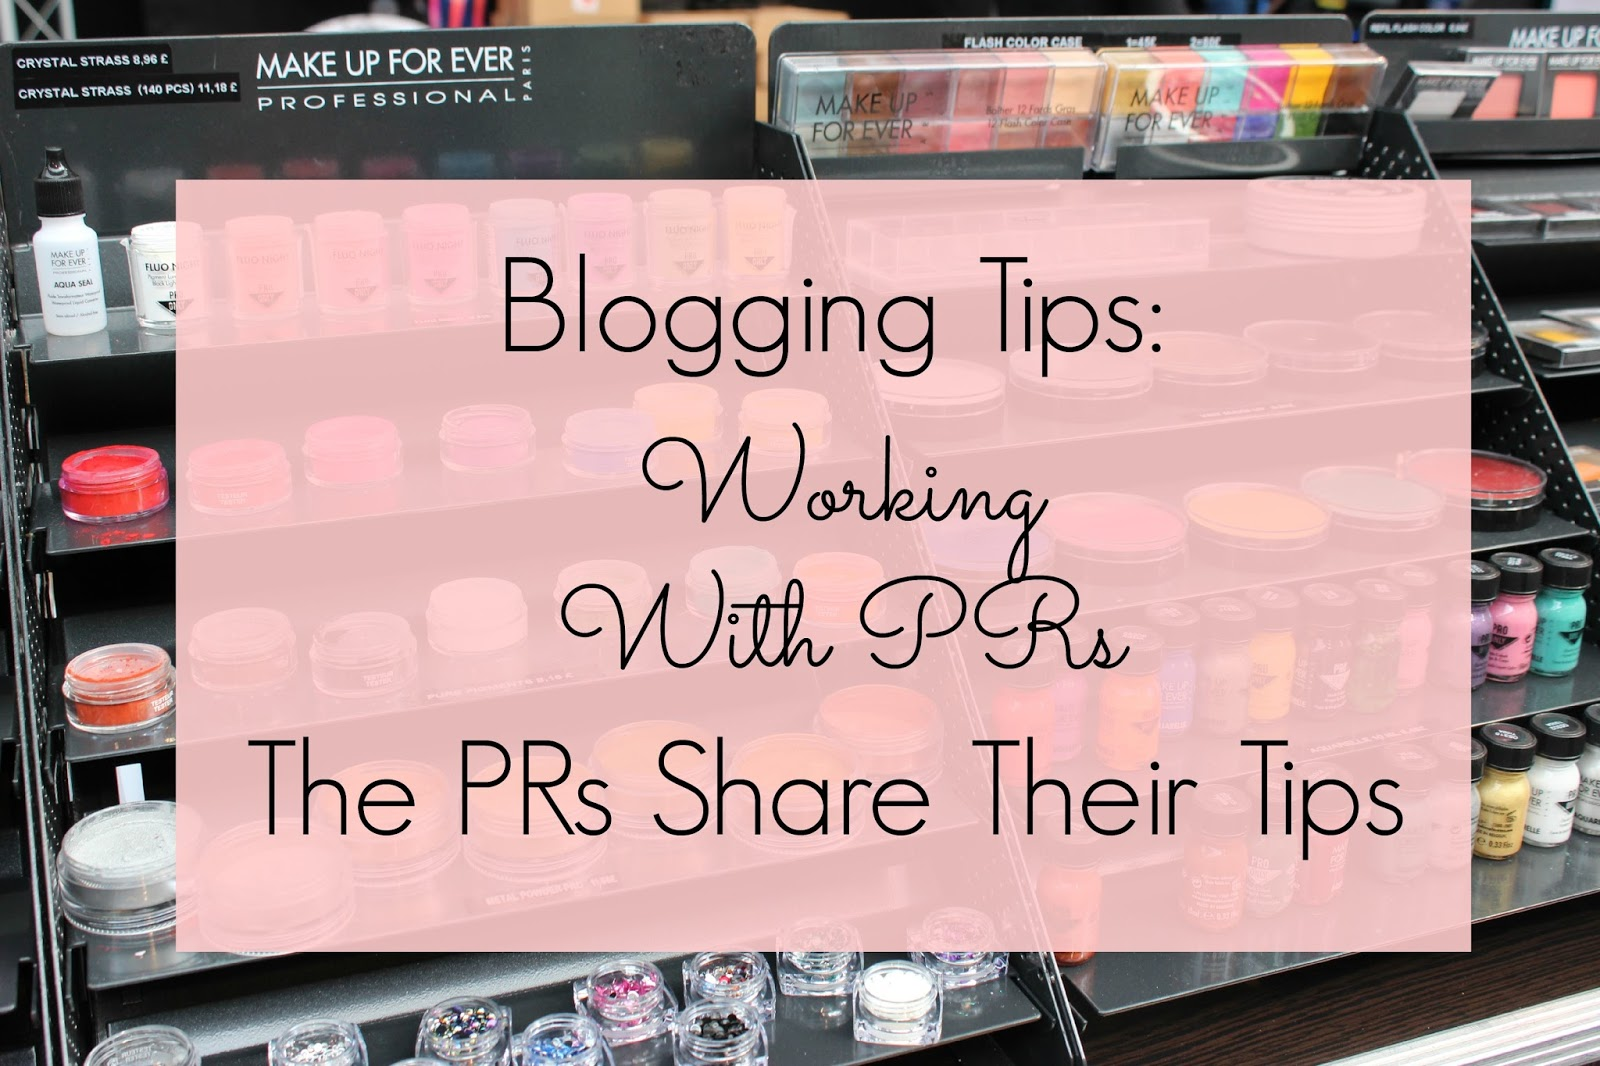 Blogging tips - working with PRS